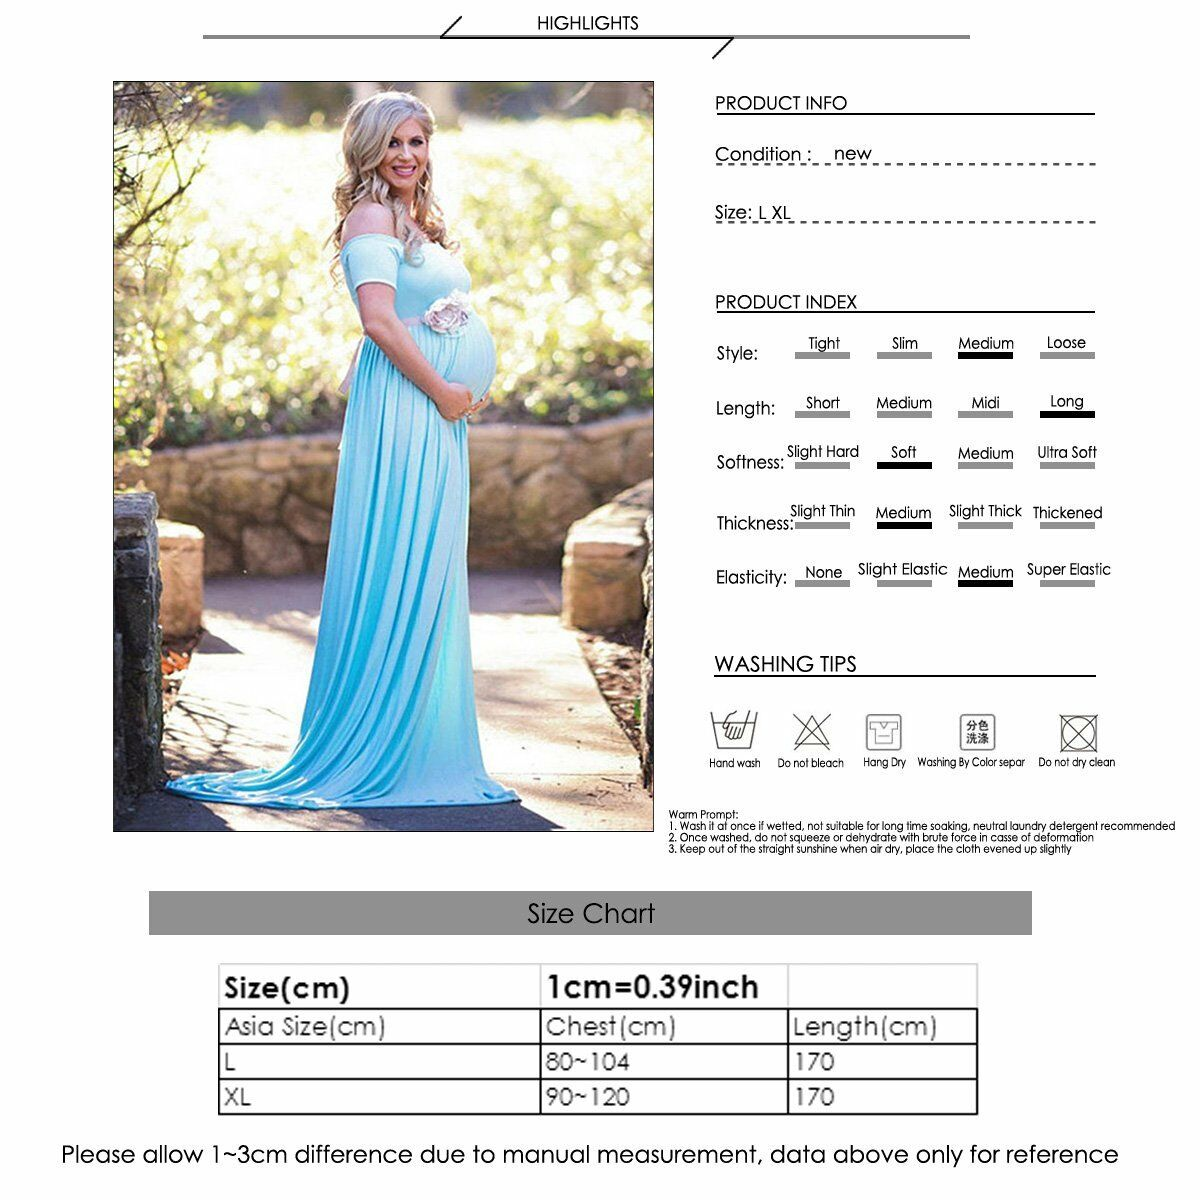 f3af49dd8c423 US Pregnant Women Cotton Gown Maxi Dress Wedding Party Prop Dresses  Photography 4 4 of 8 ...